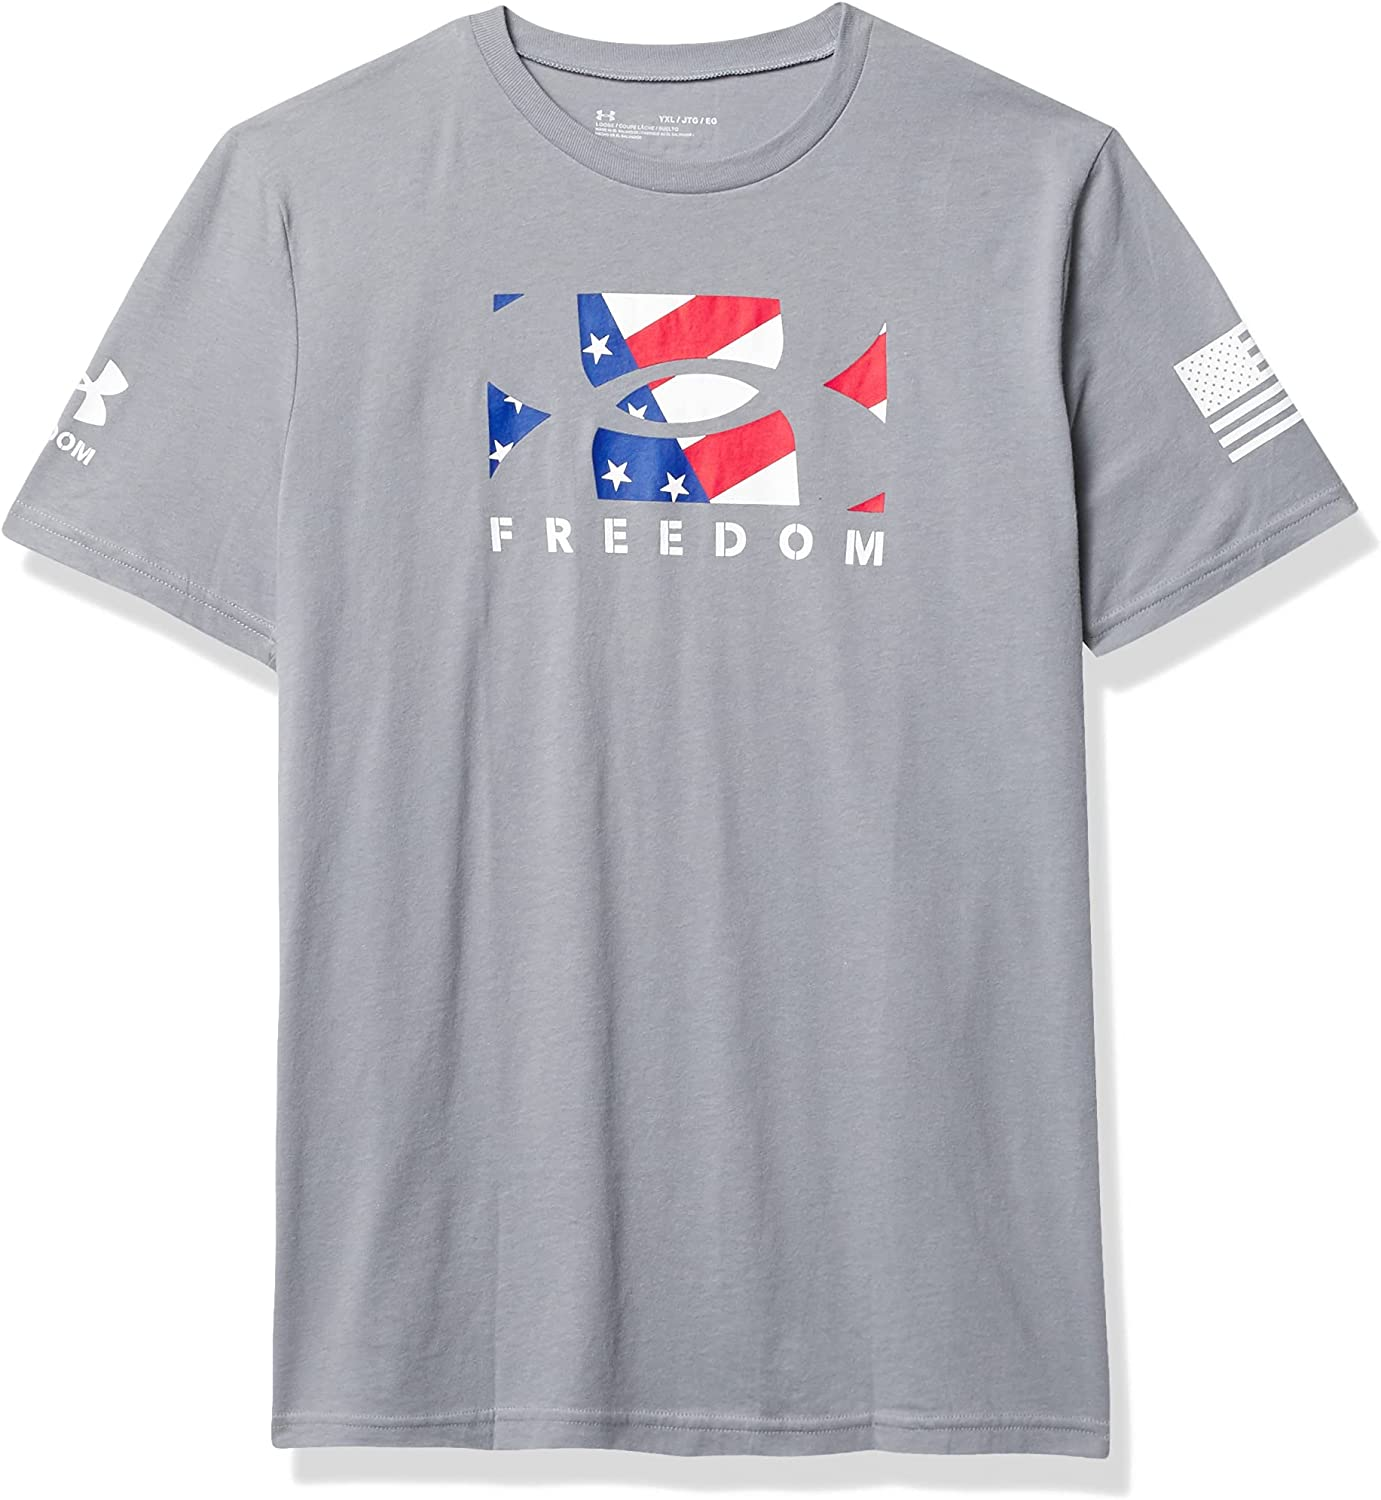 Under Armour Boys' New Freedom BFL New T-Shirt